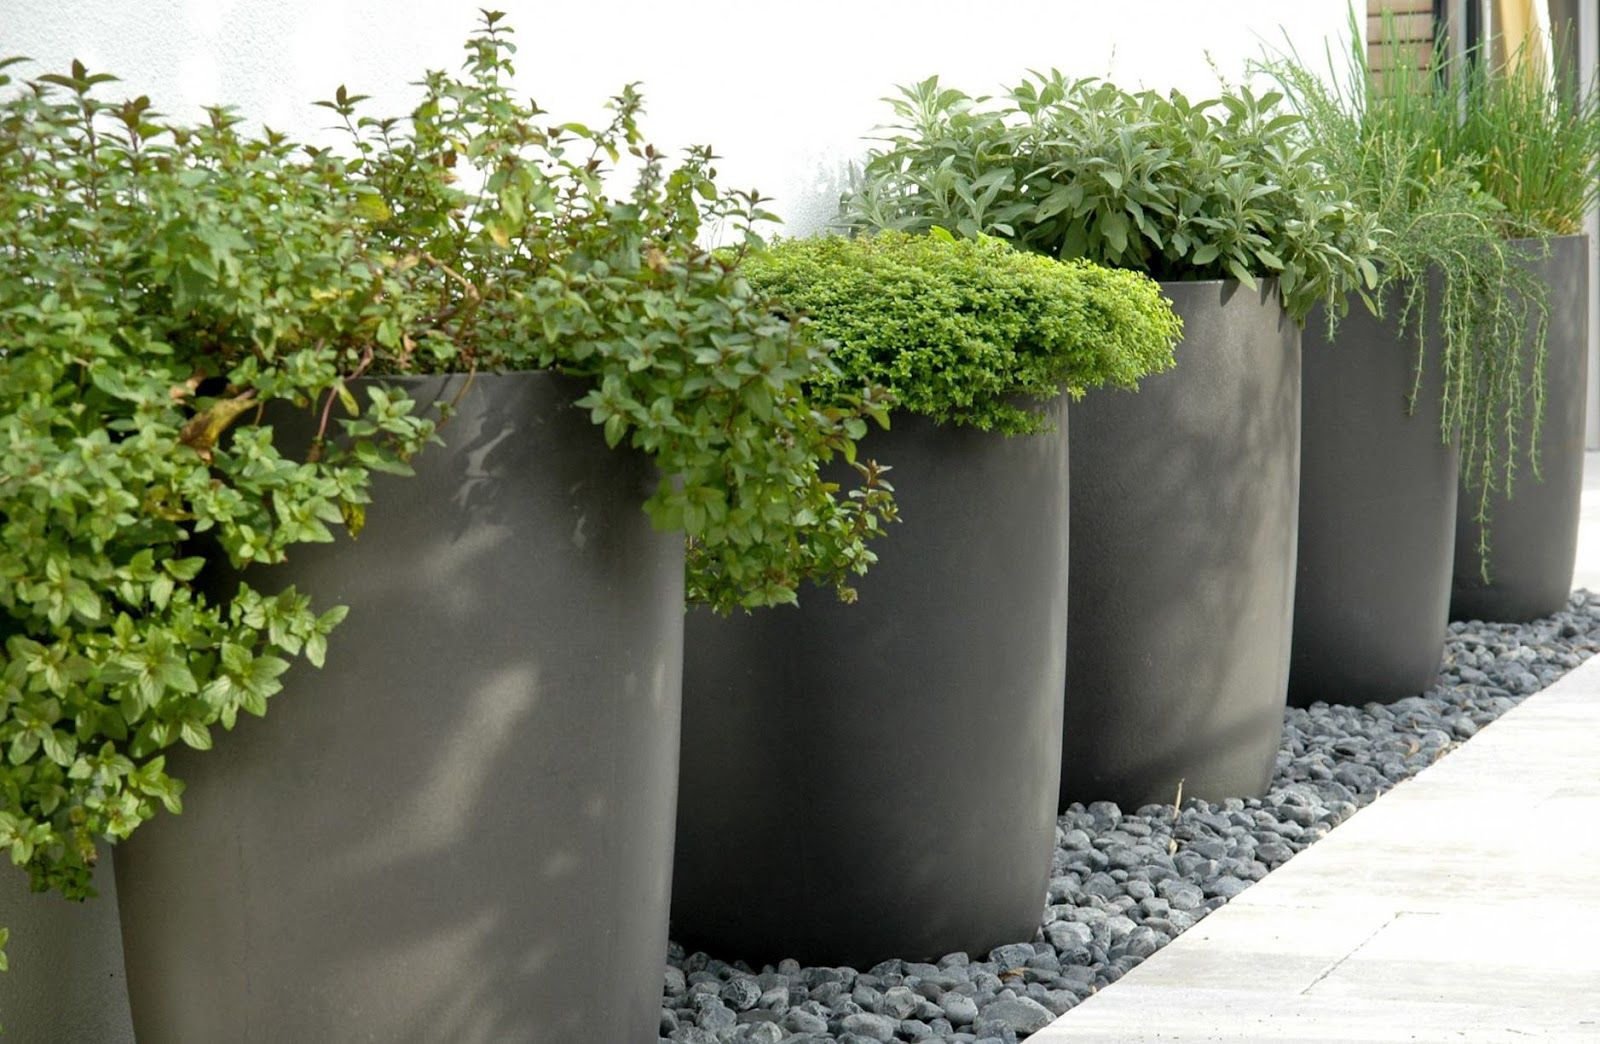 Greening up the side of the house garden planters design for the garden large planter pots are perfect for private